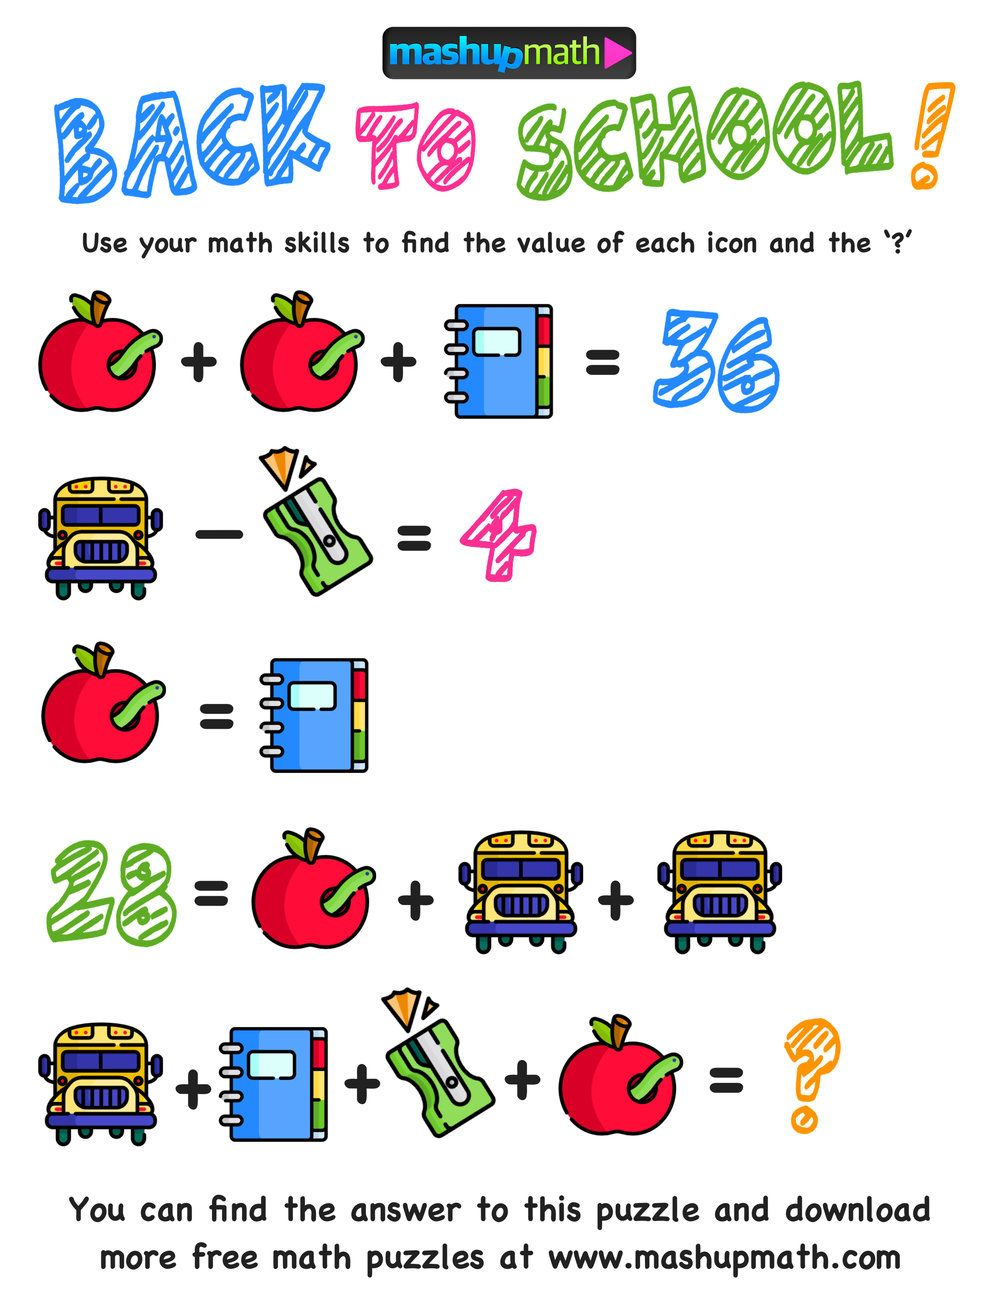 Here Are The Only Free Back To School Math Worksheets You Ll Ever Need Mashup Math Maths Puzzles Math Puzzles Middle School Math Challenge